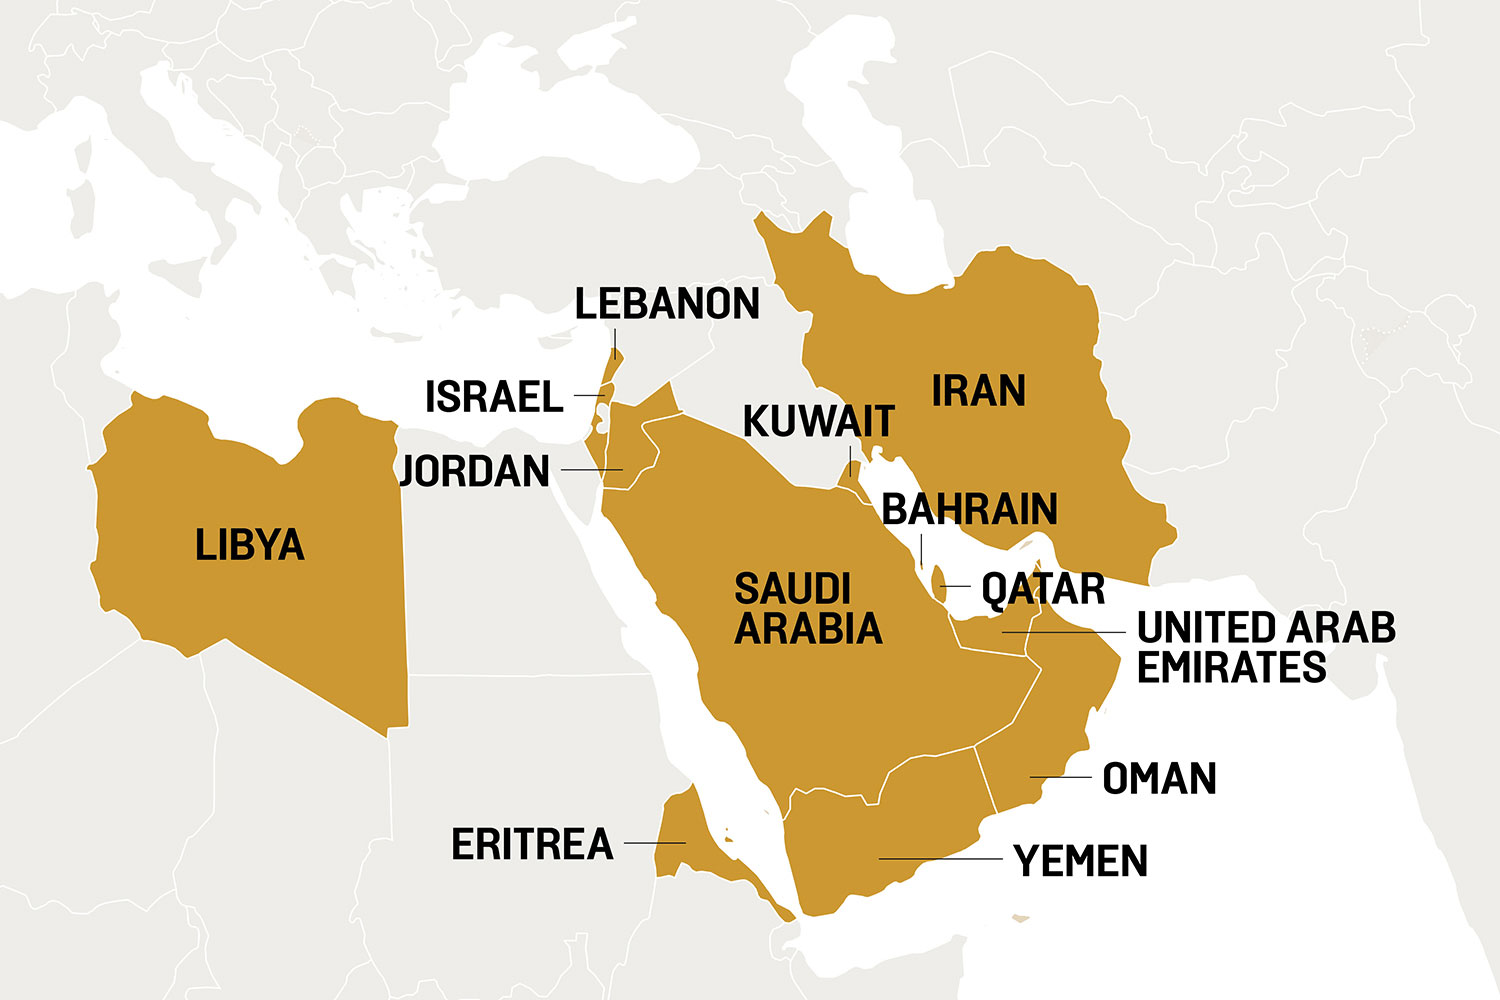 the Arab region